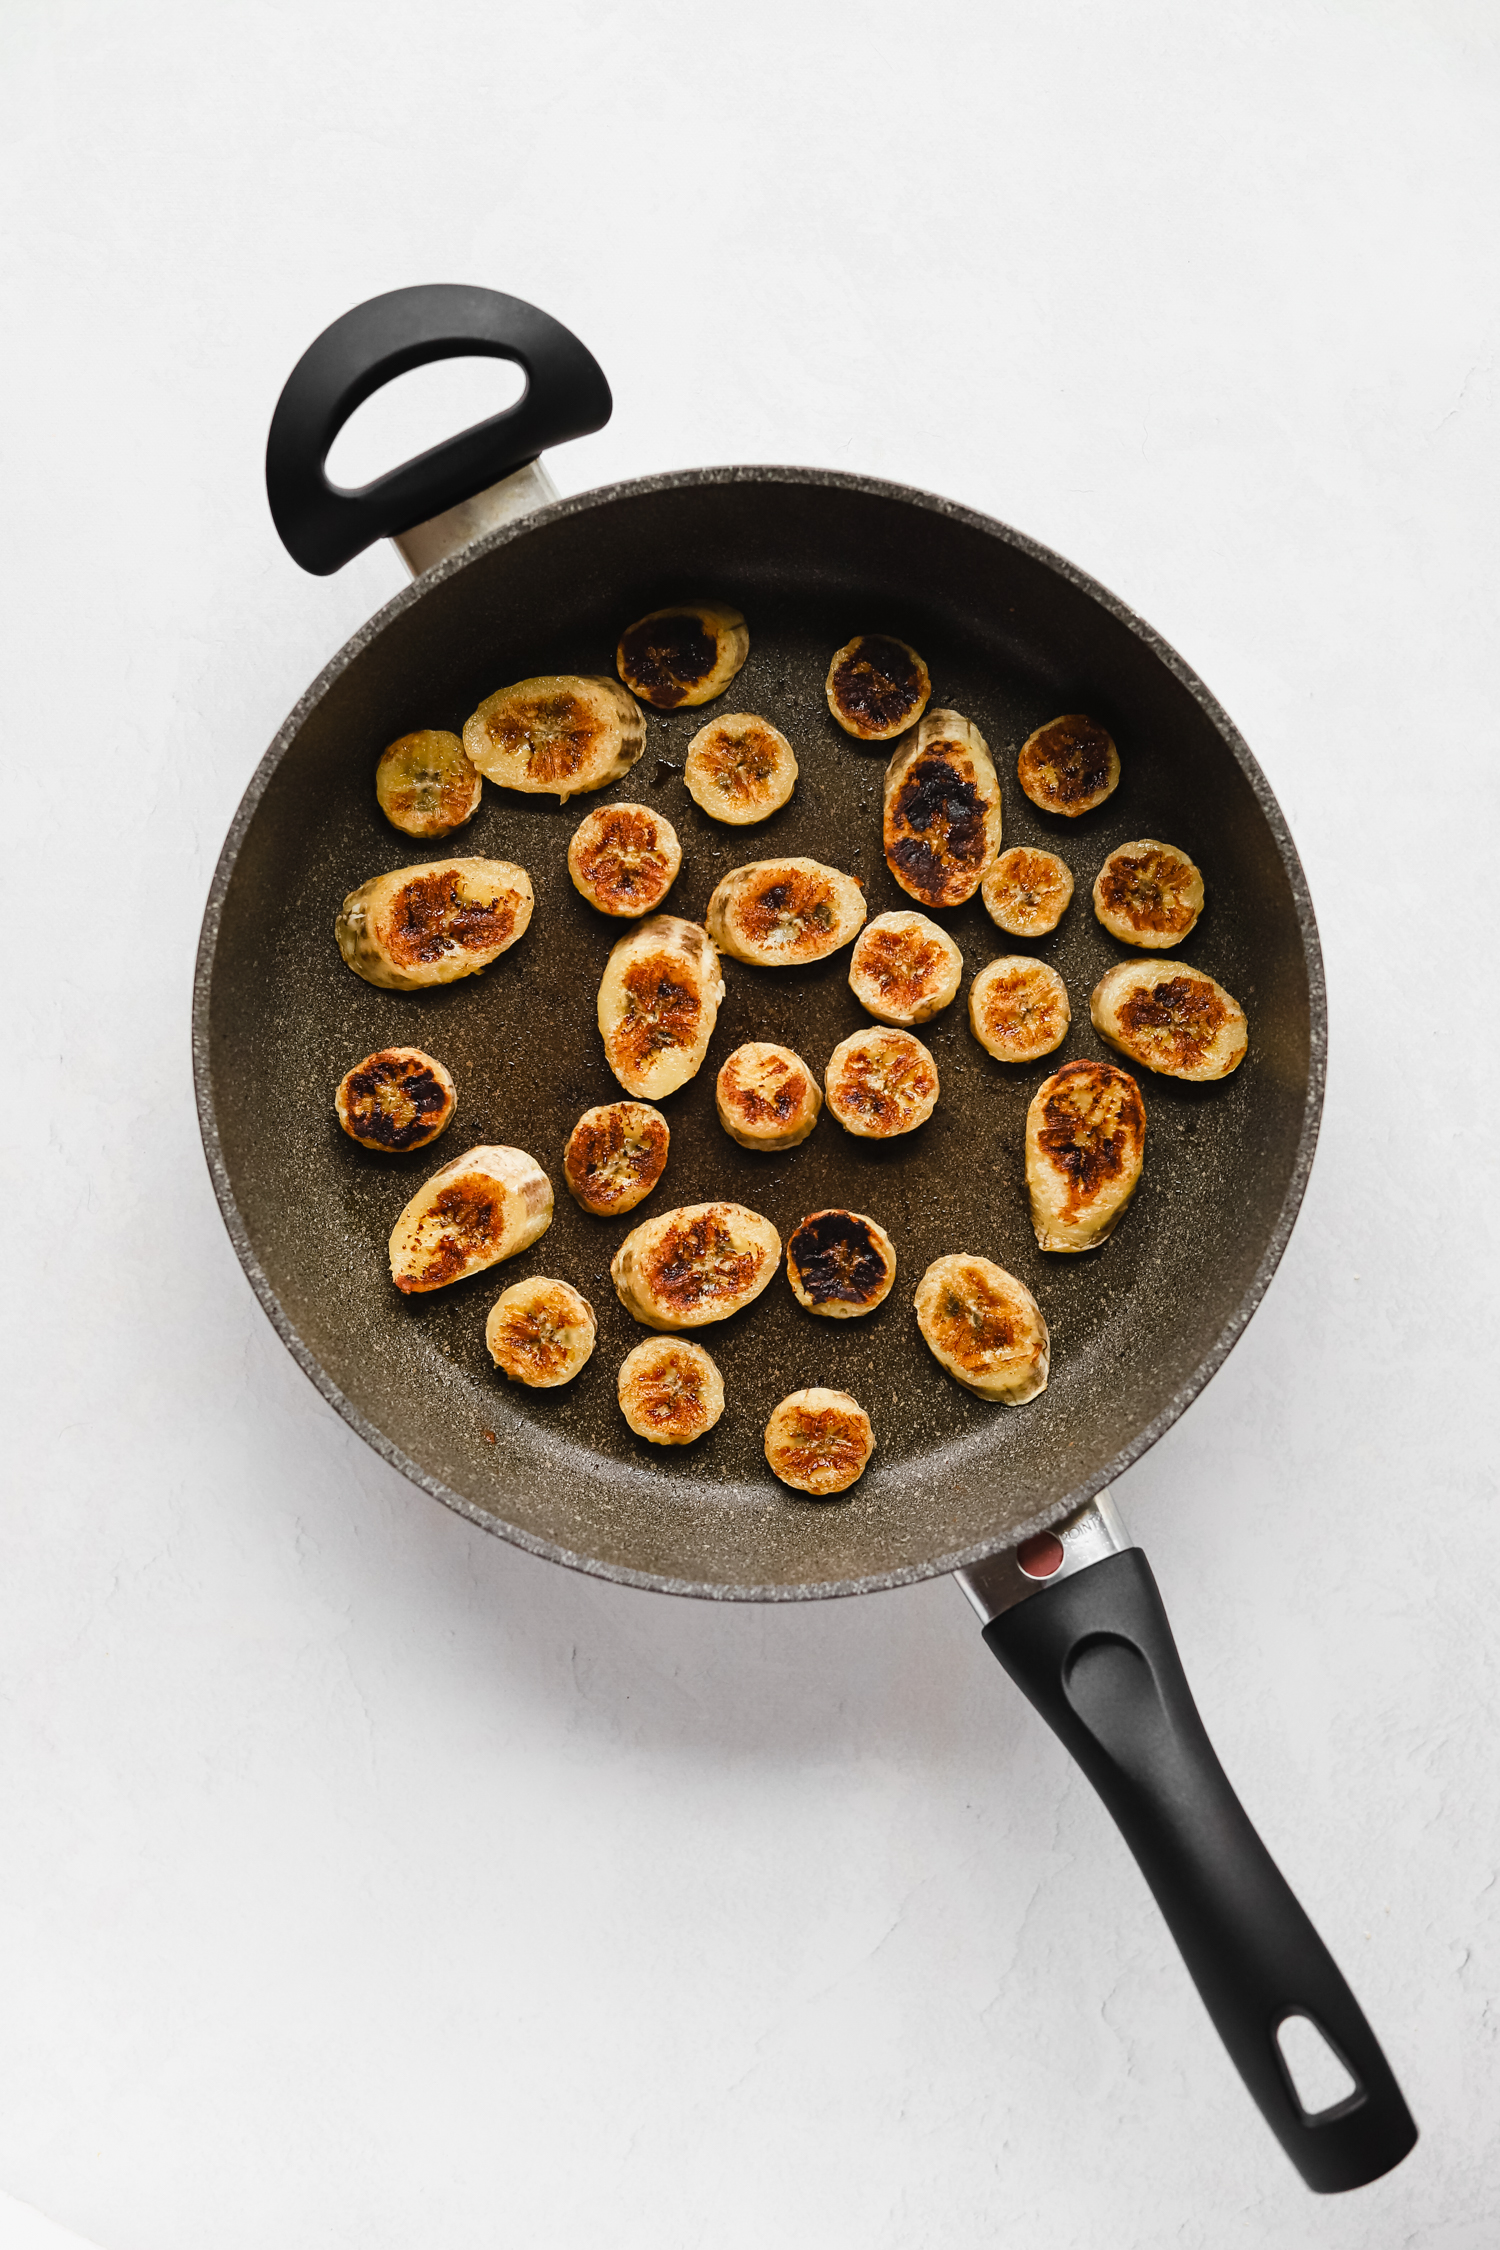 Caramelizing banana slices in coconut oil in a large pan